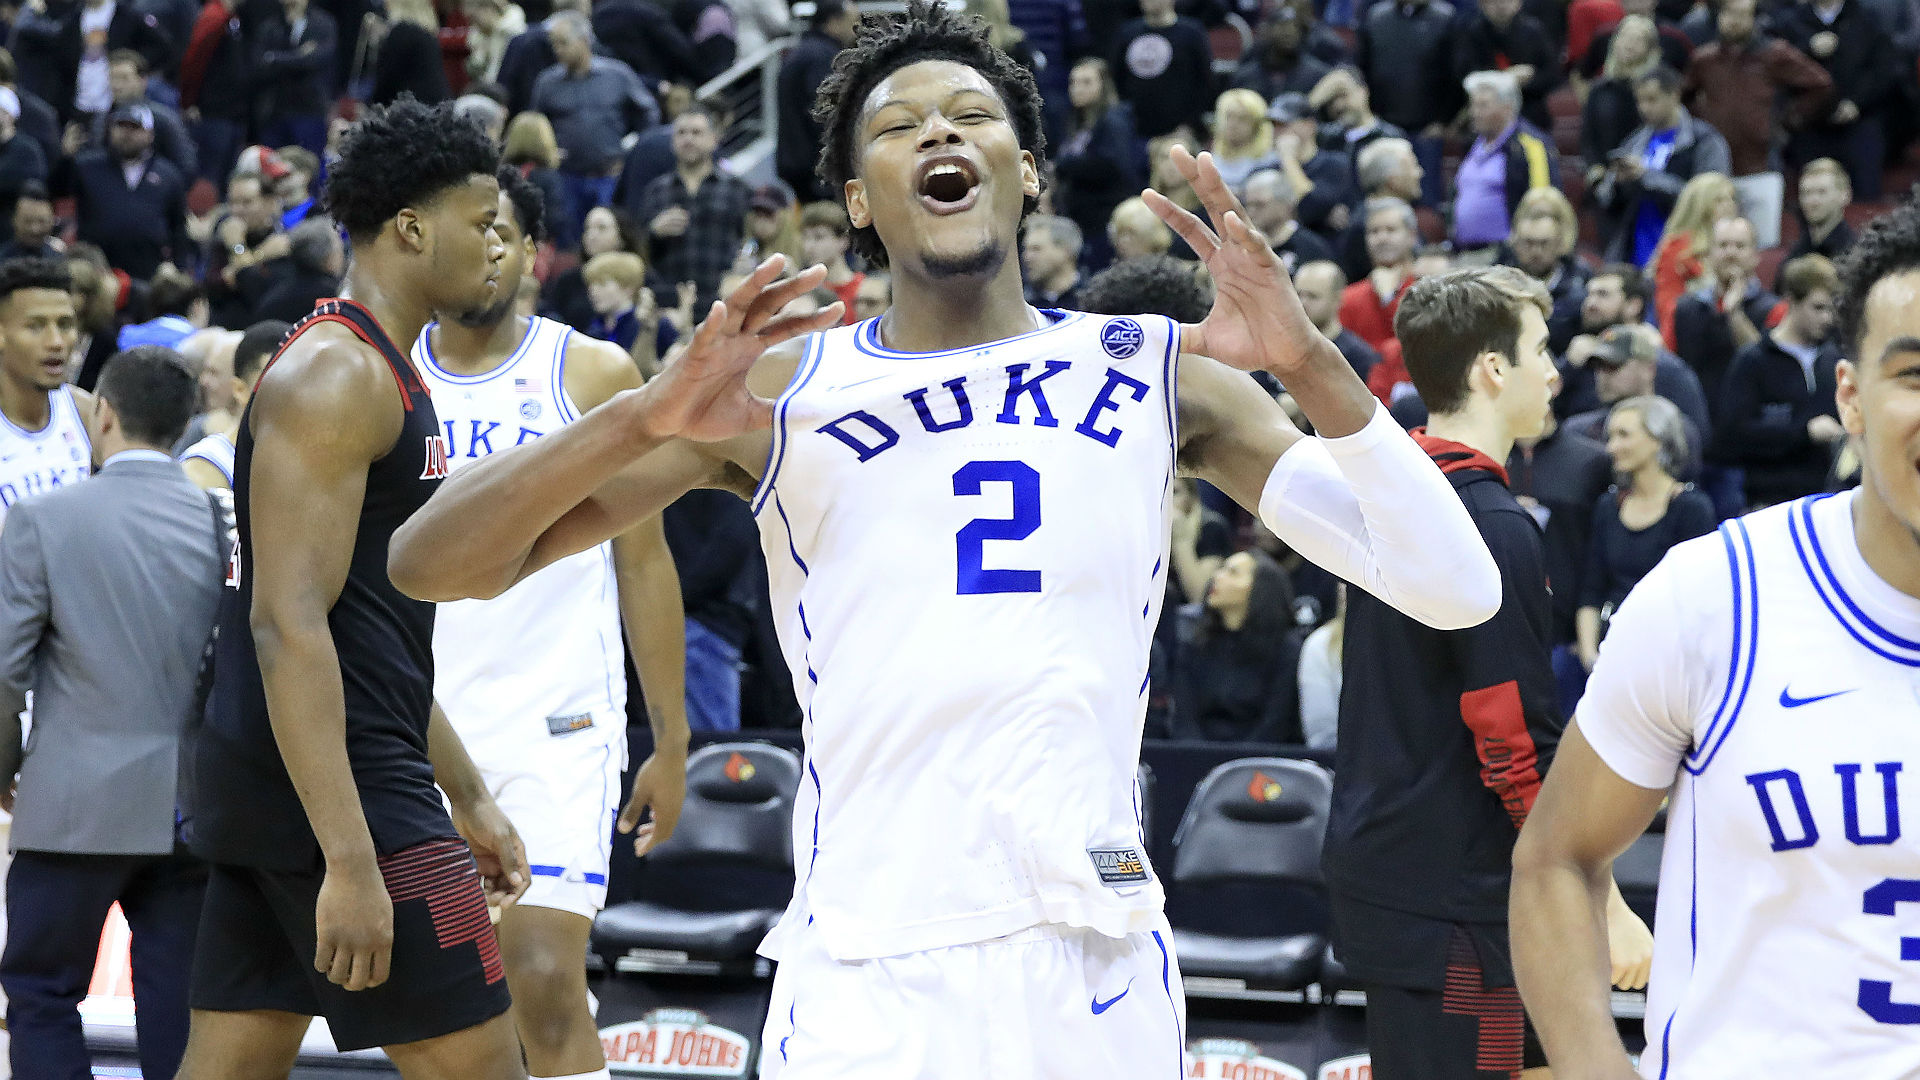 Embattled Duke rallies from 23 down to beat Louisville